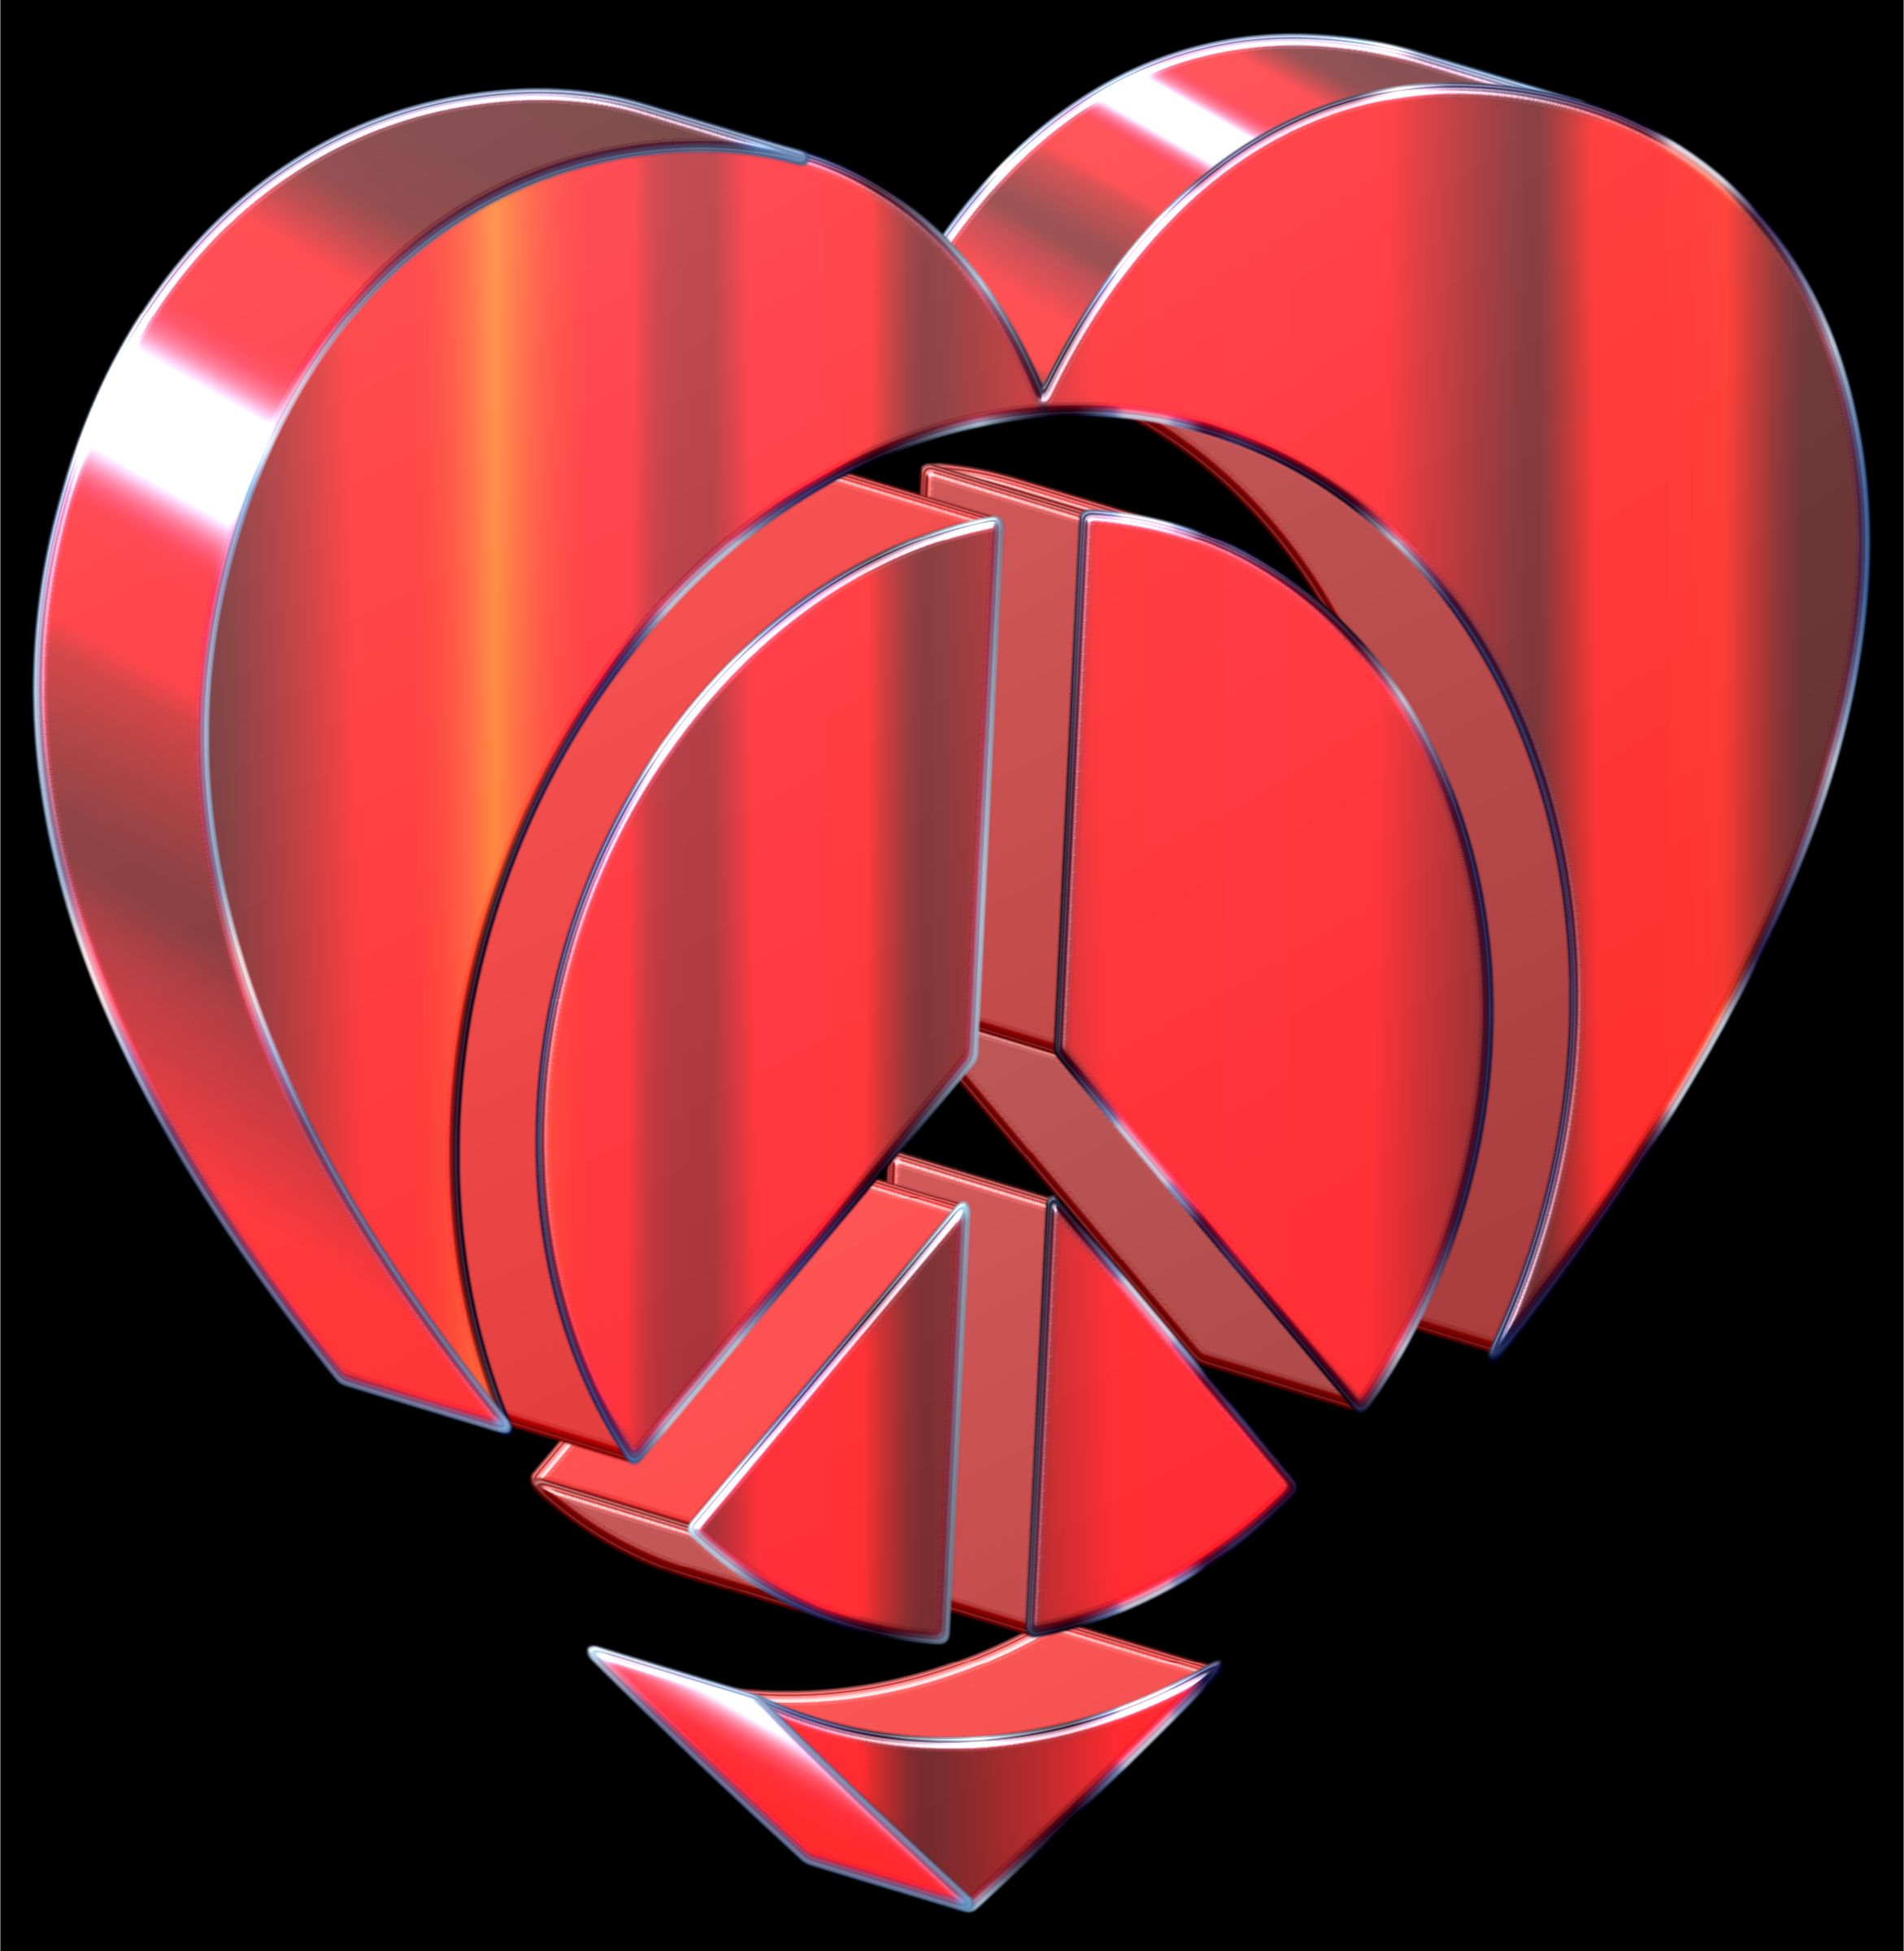 3D Peace Heart 2 by GDJ